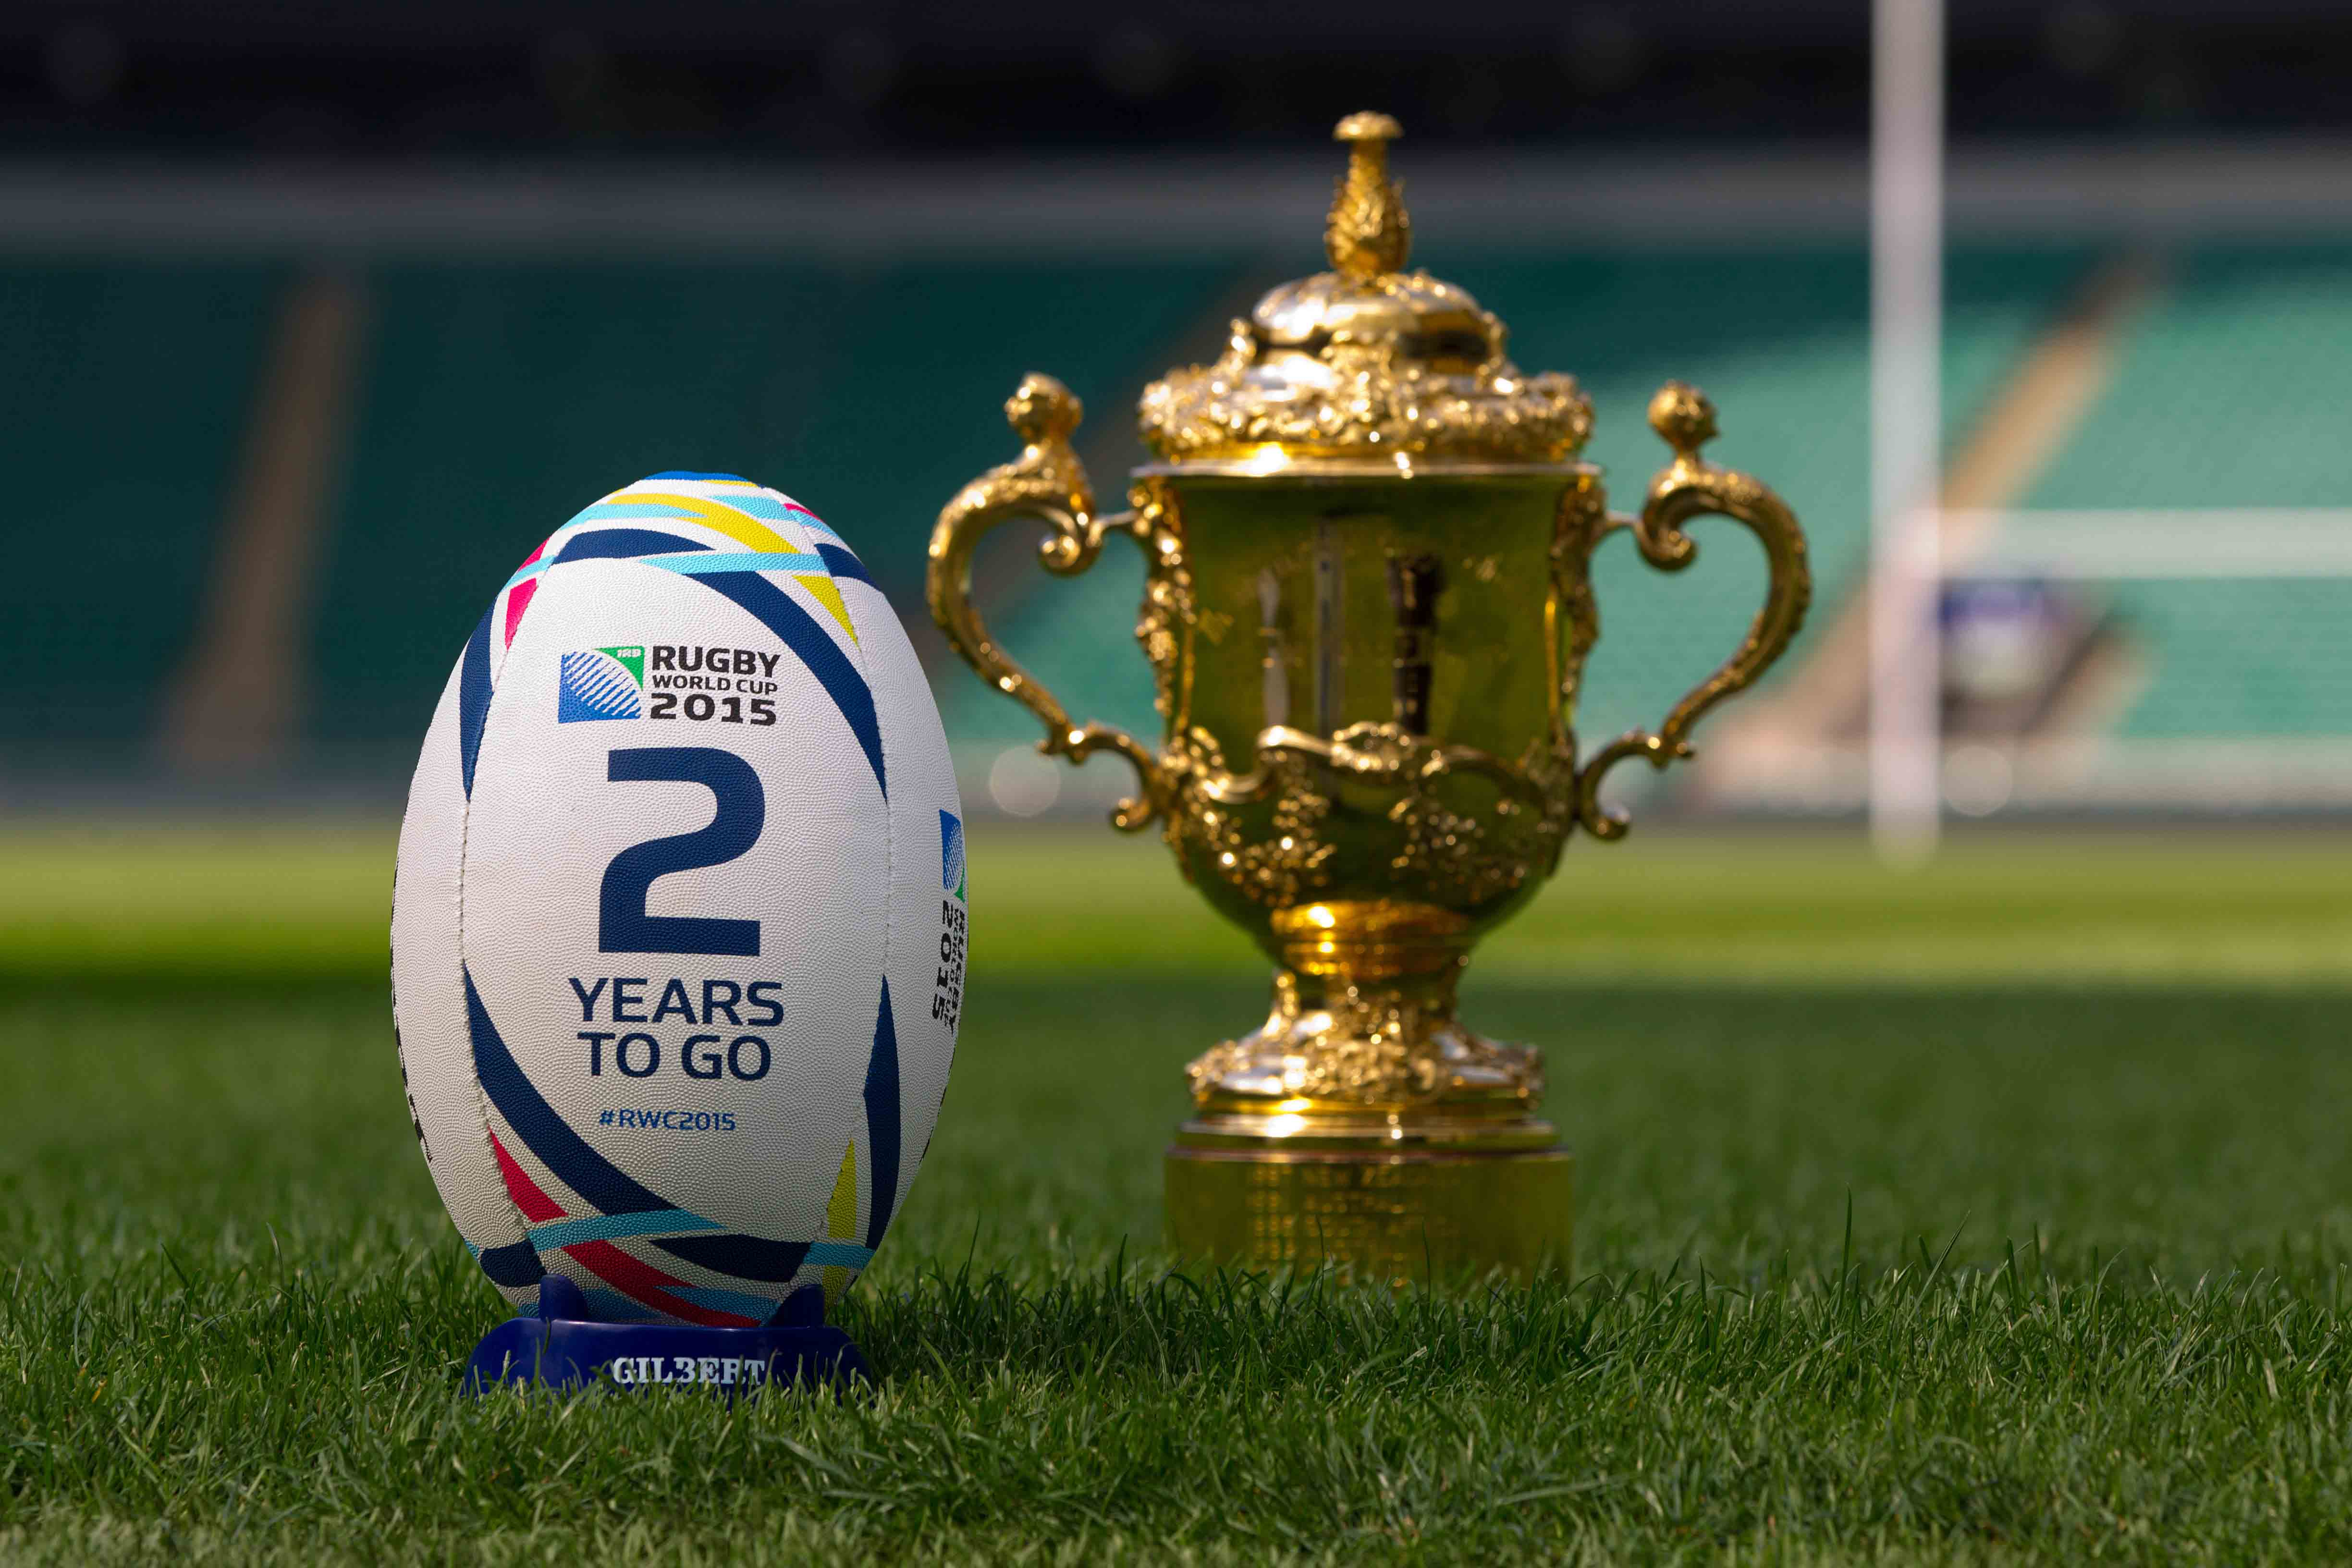 4896x3264 - Rugby World Cup 2015 Wallpapers 32